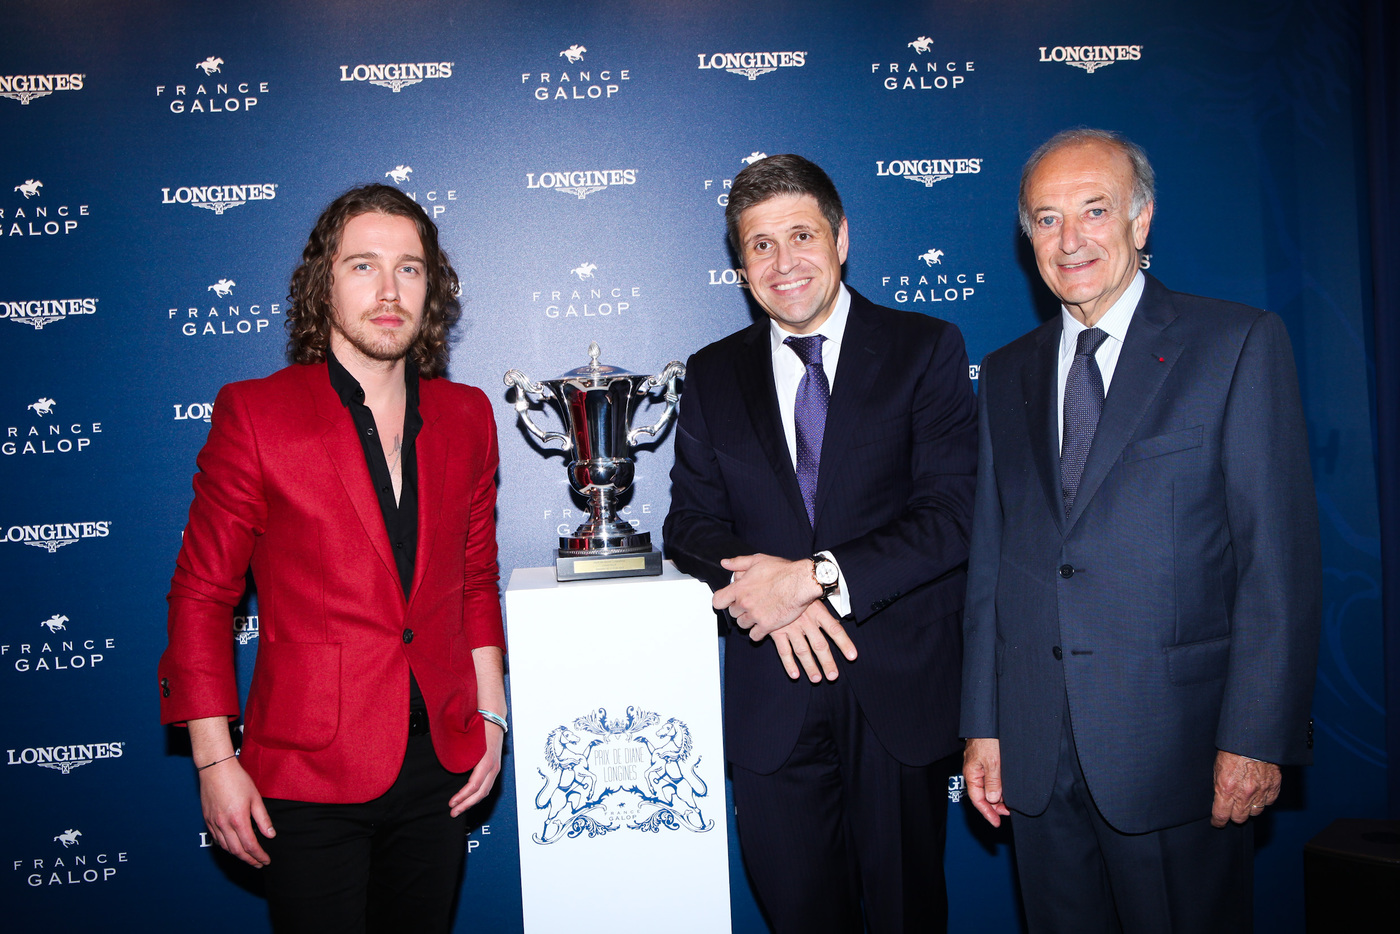 Longines Flat Racing Event: The Prix de Diane Longines – An Unmissable Event of Elegance 2